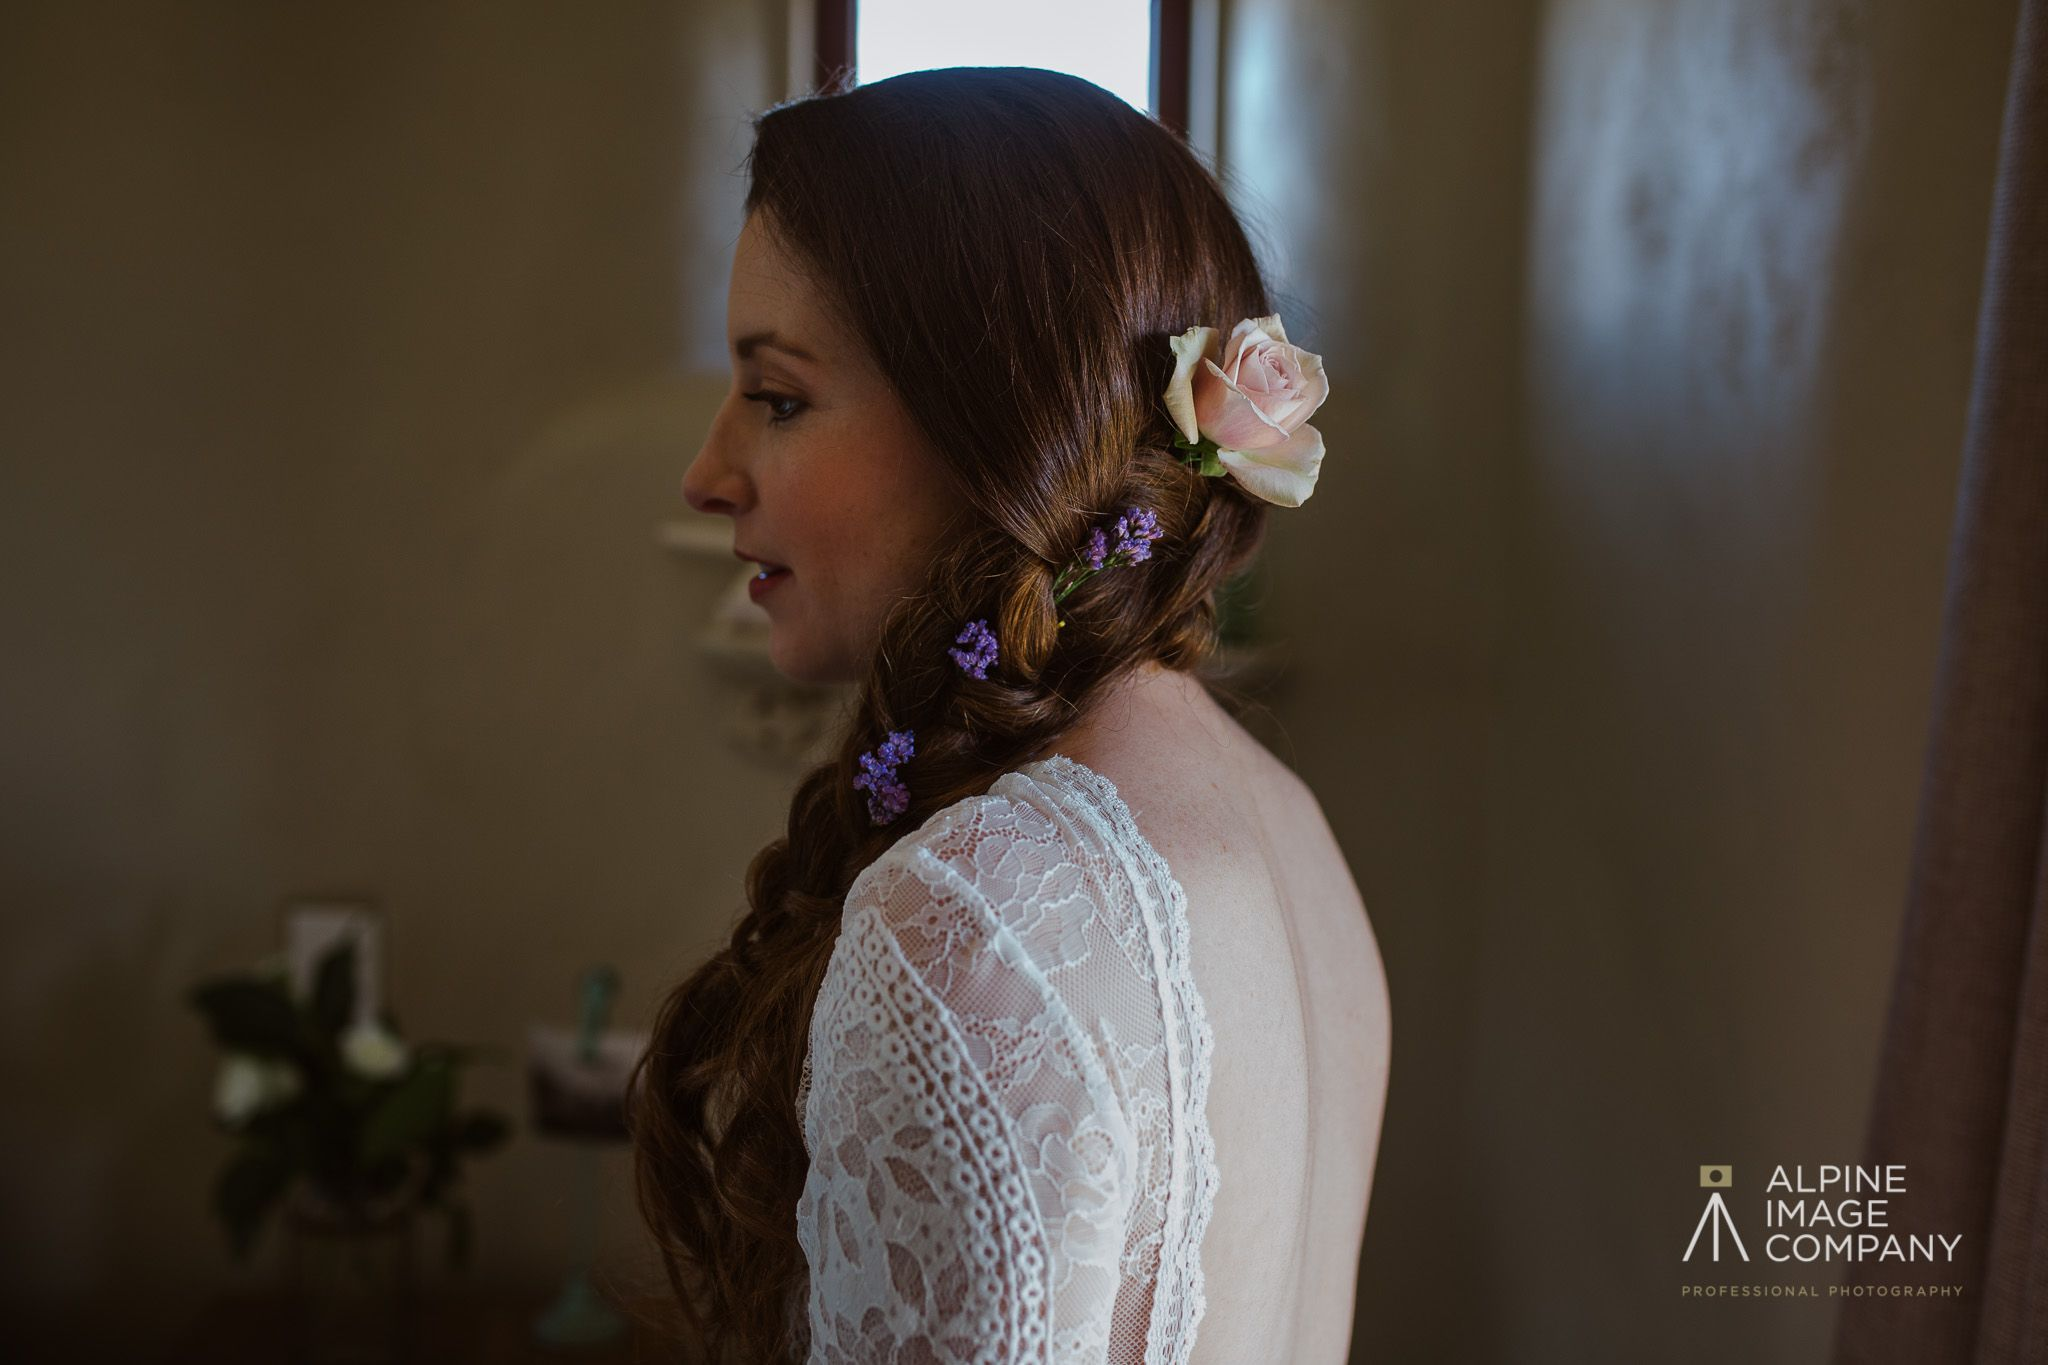 braided hair style with loose curls and fresh flowers. hair by sara